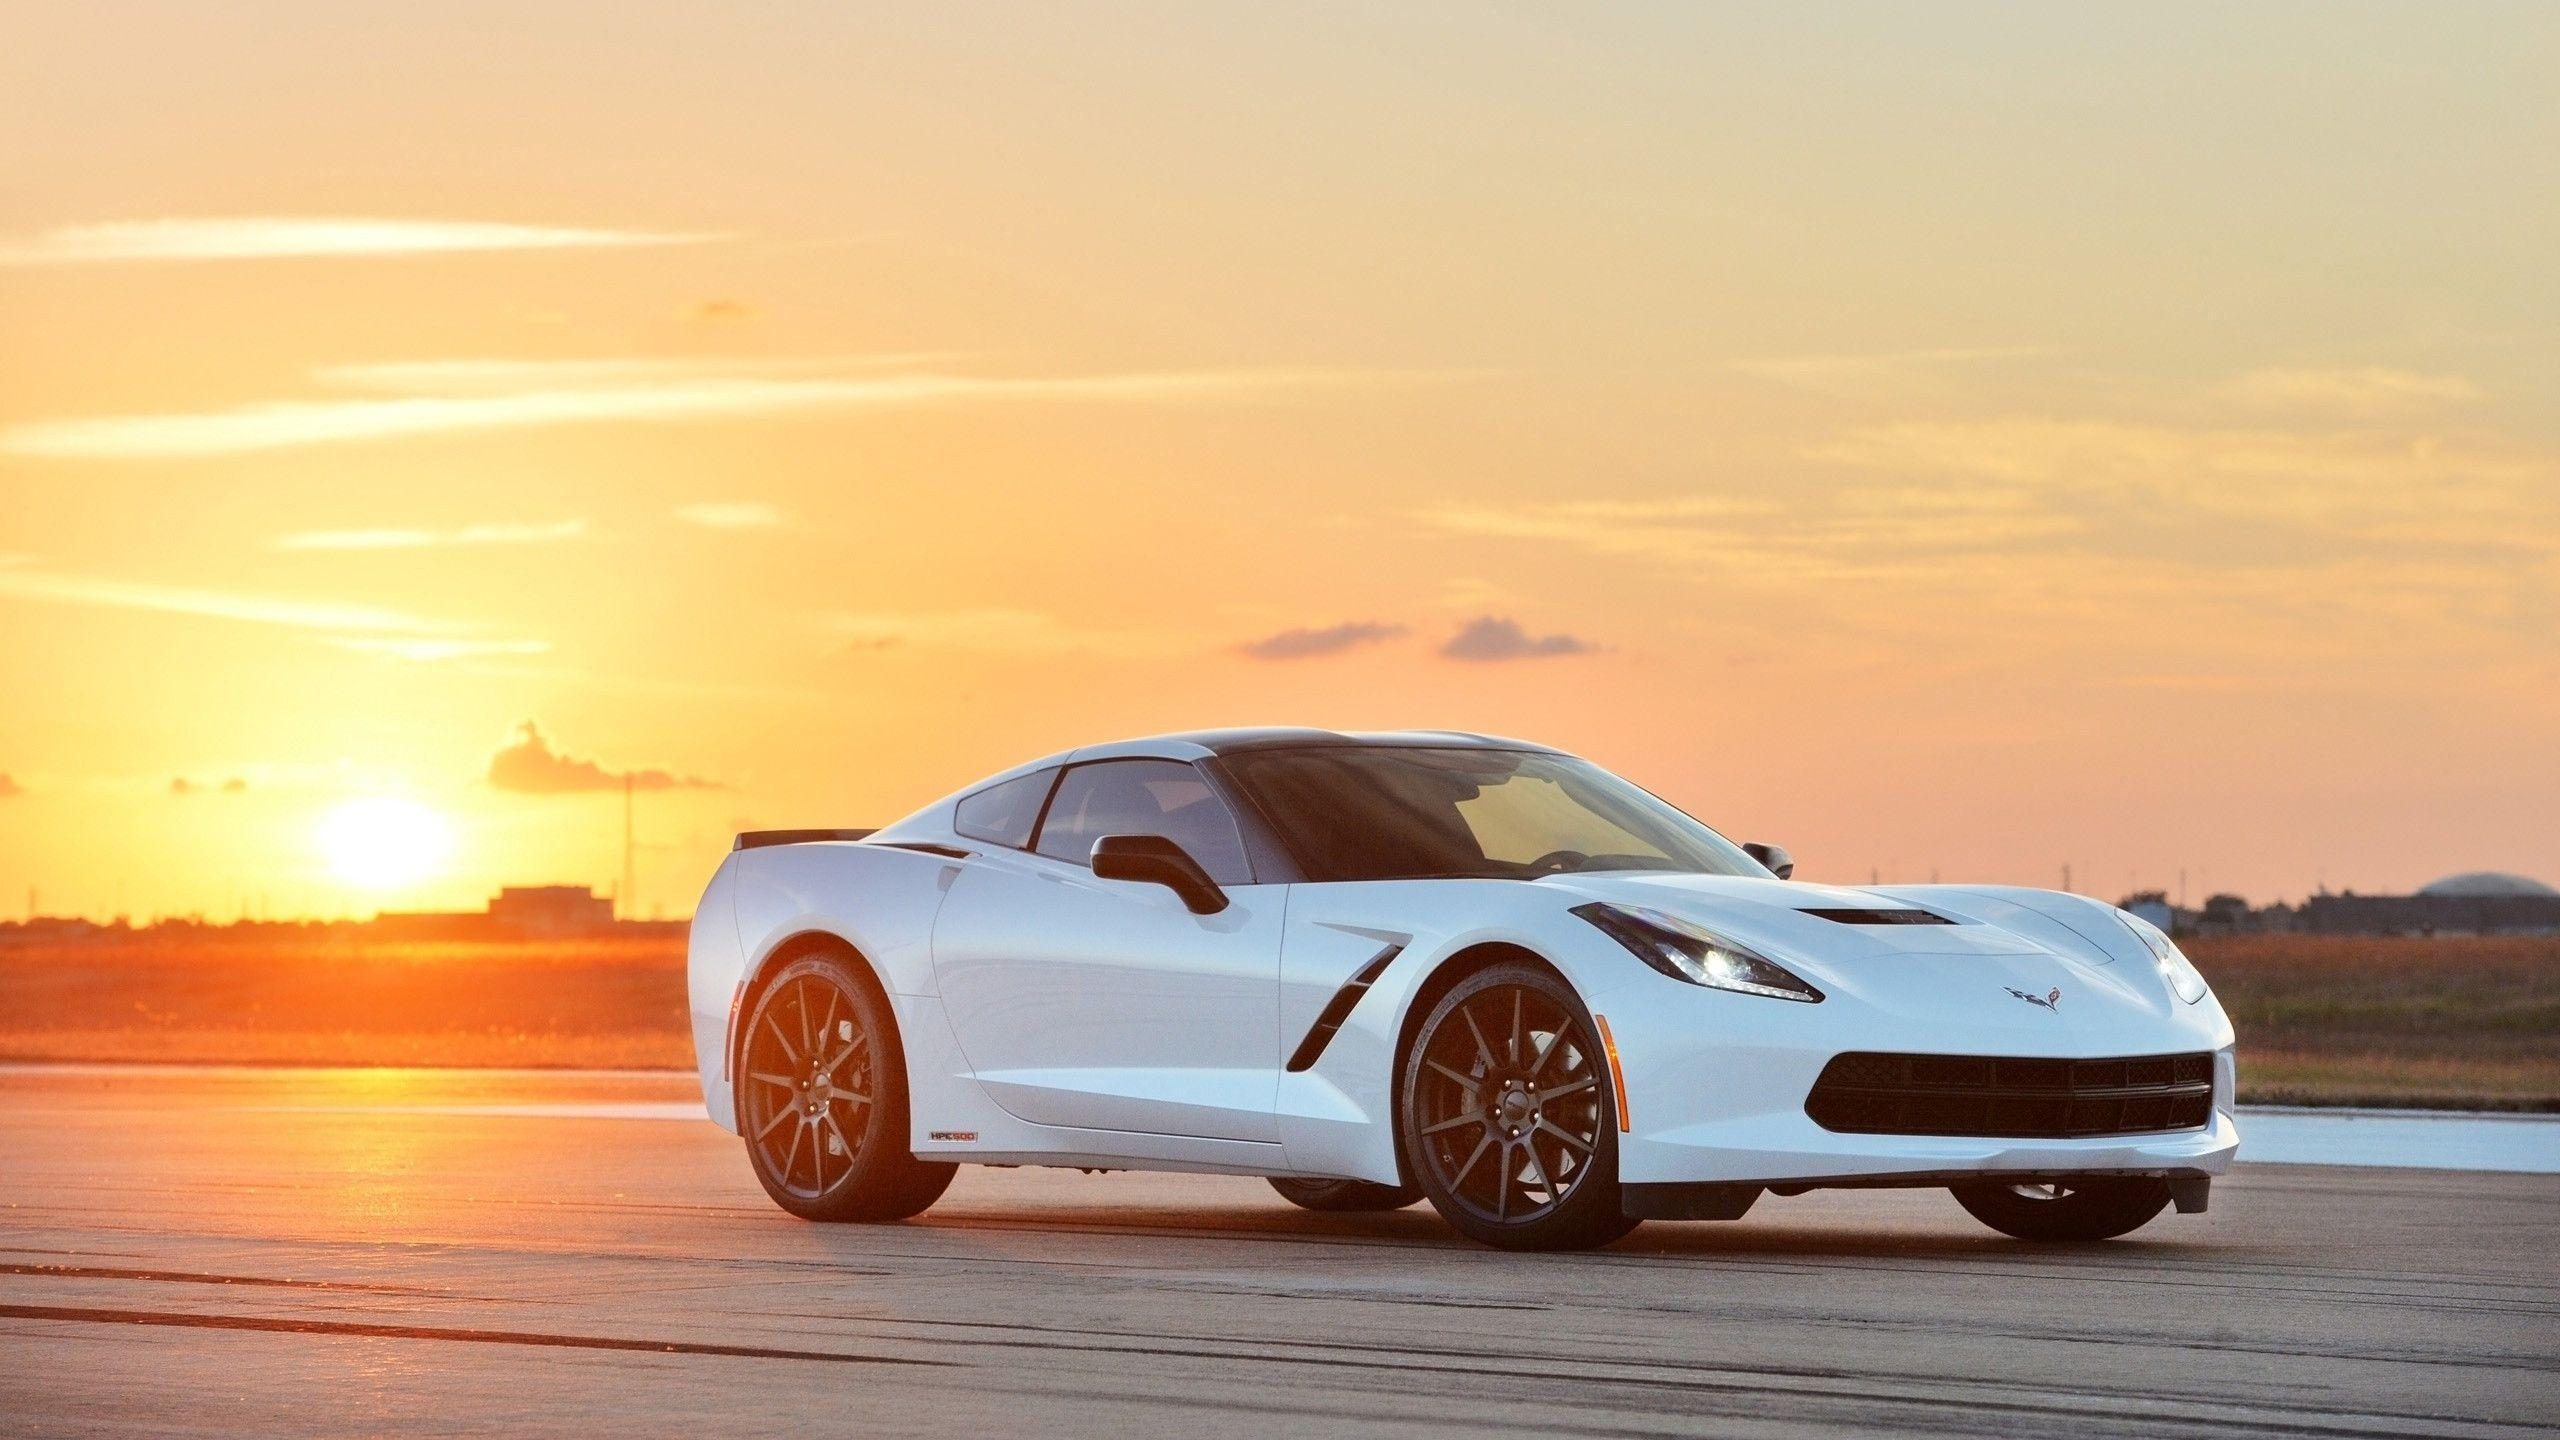 Corvette Stingray 2015 Wallpapers HD - Wallpaper Cave